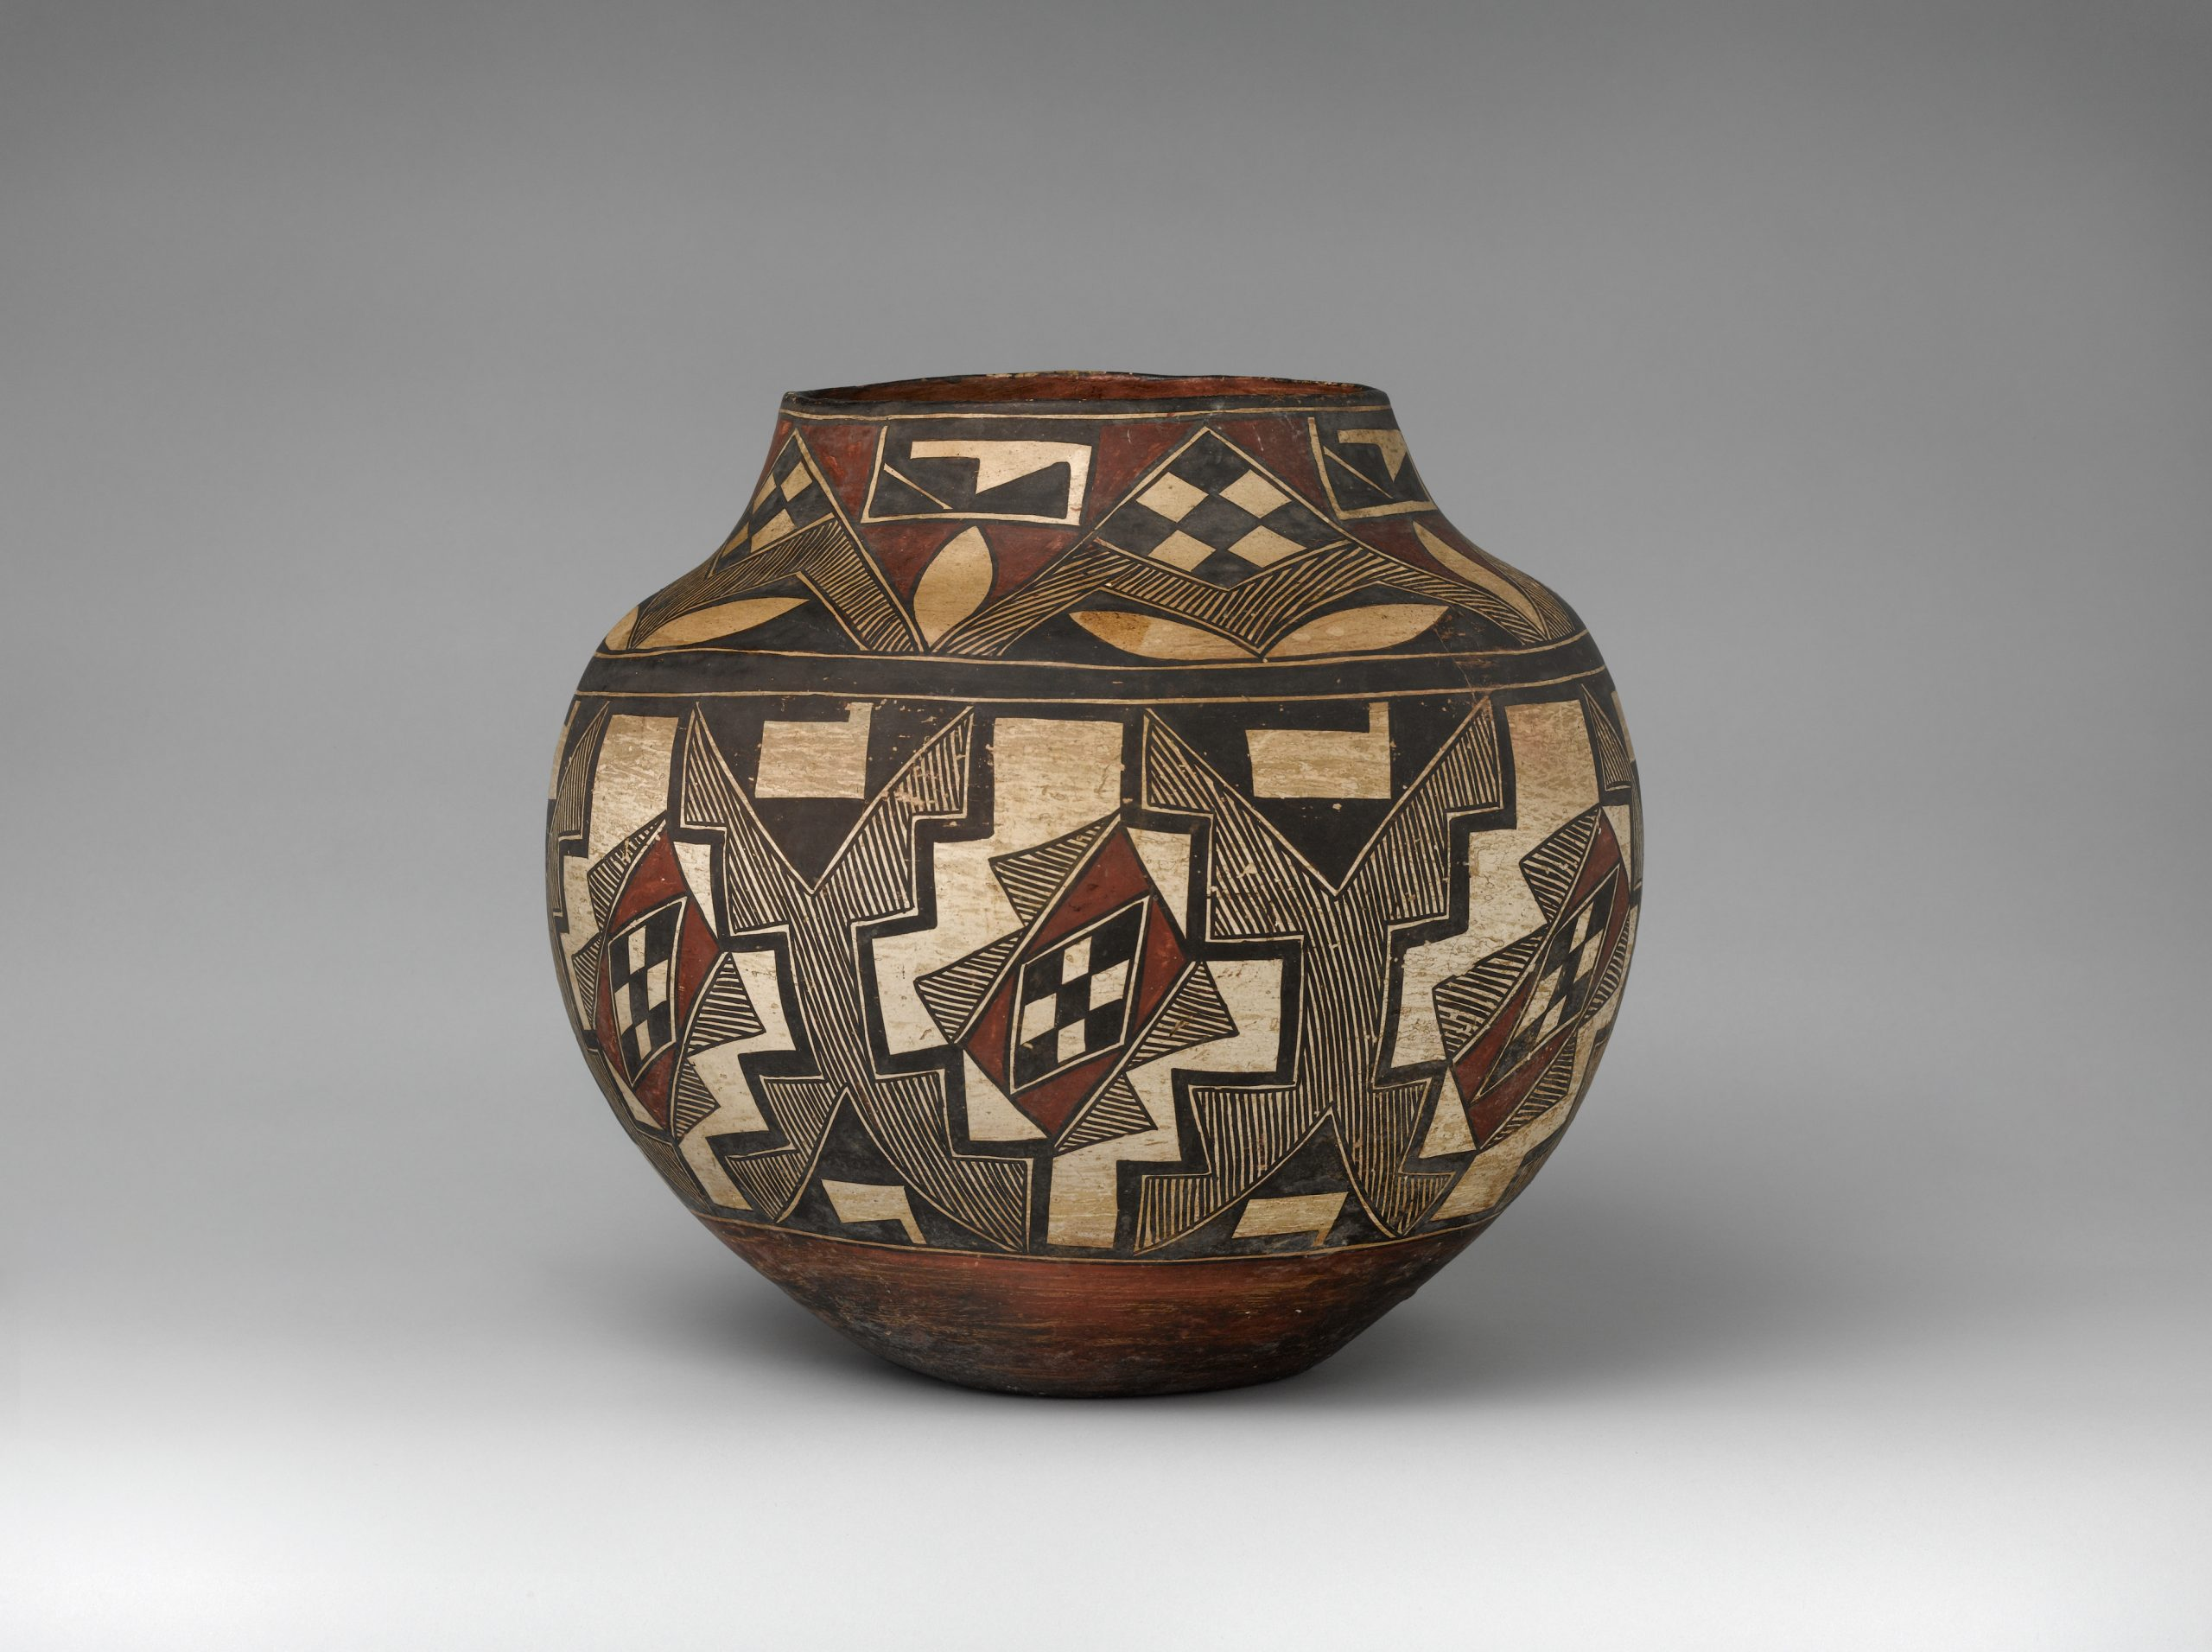 An Acoma jar with two bands of checkered, linear, and geometric patterns in black, beige, and rust-brown pigments.